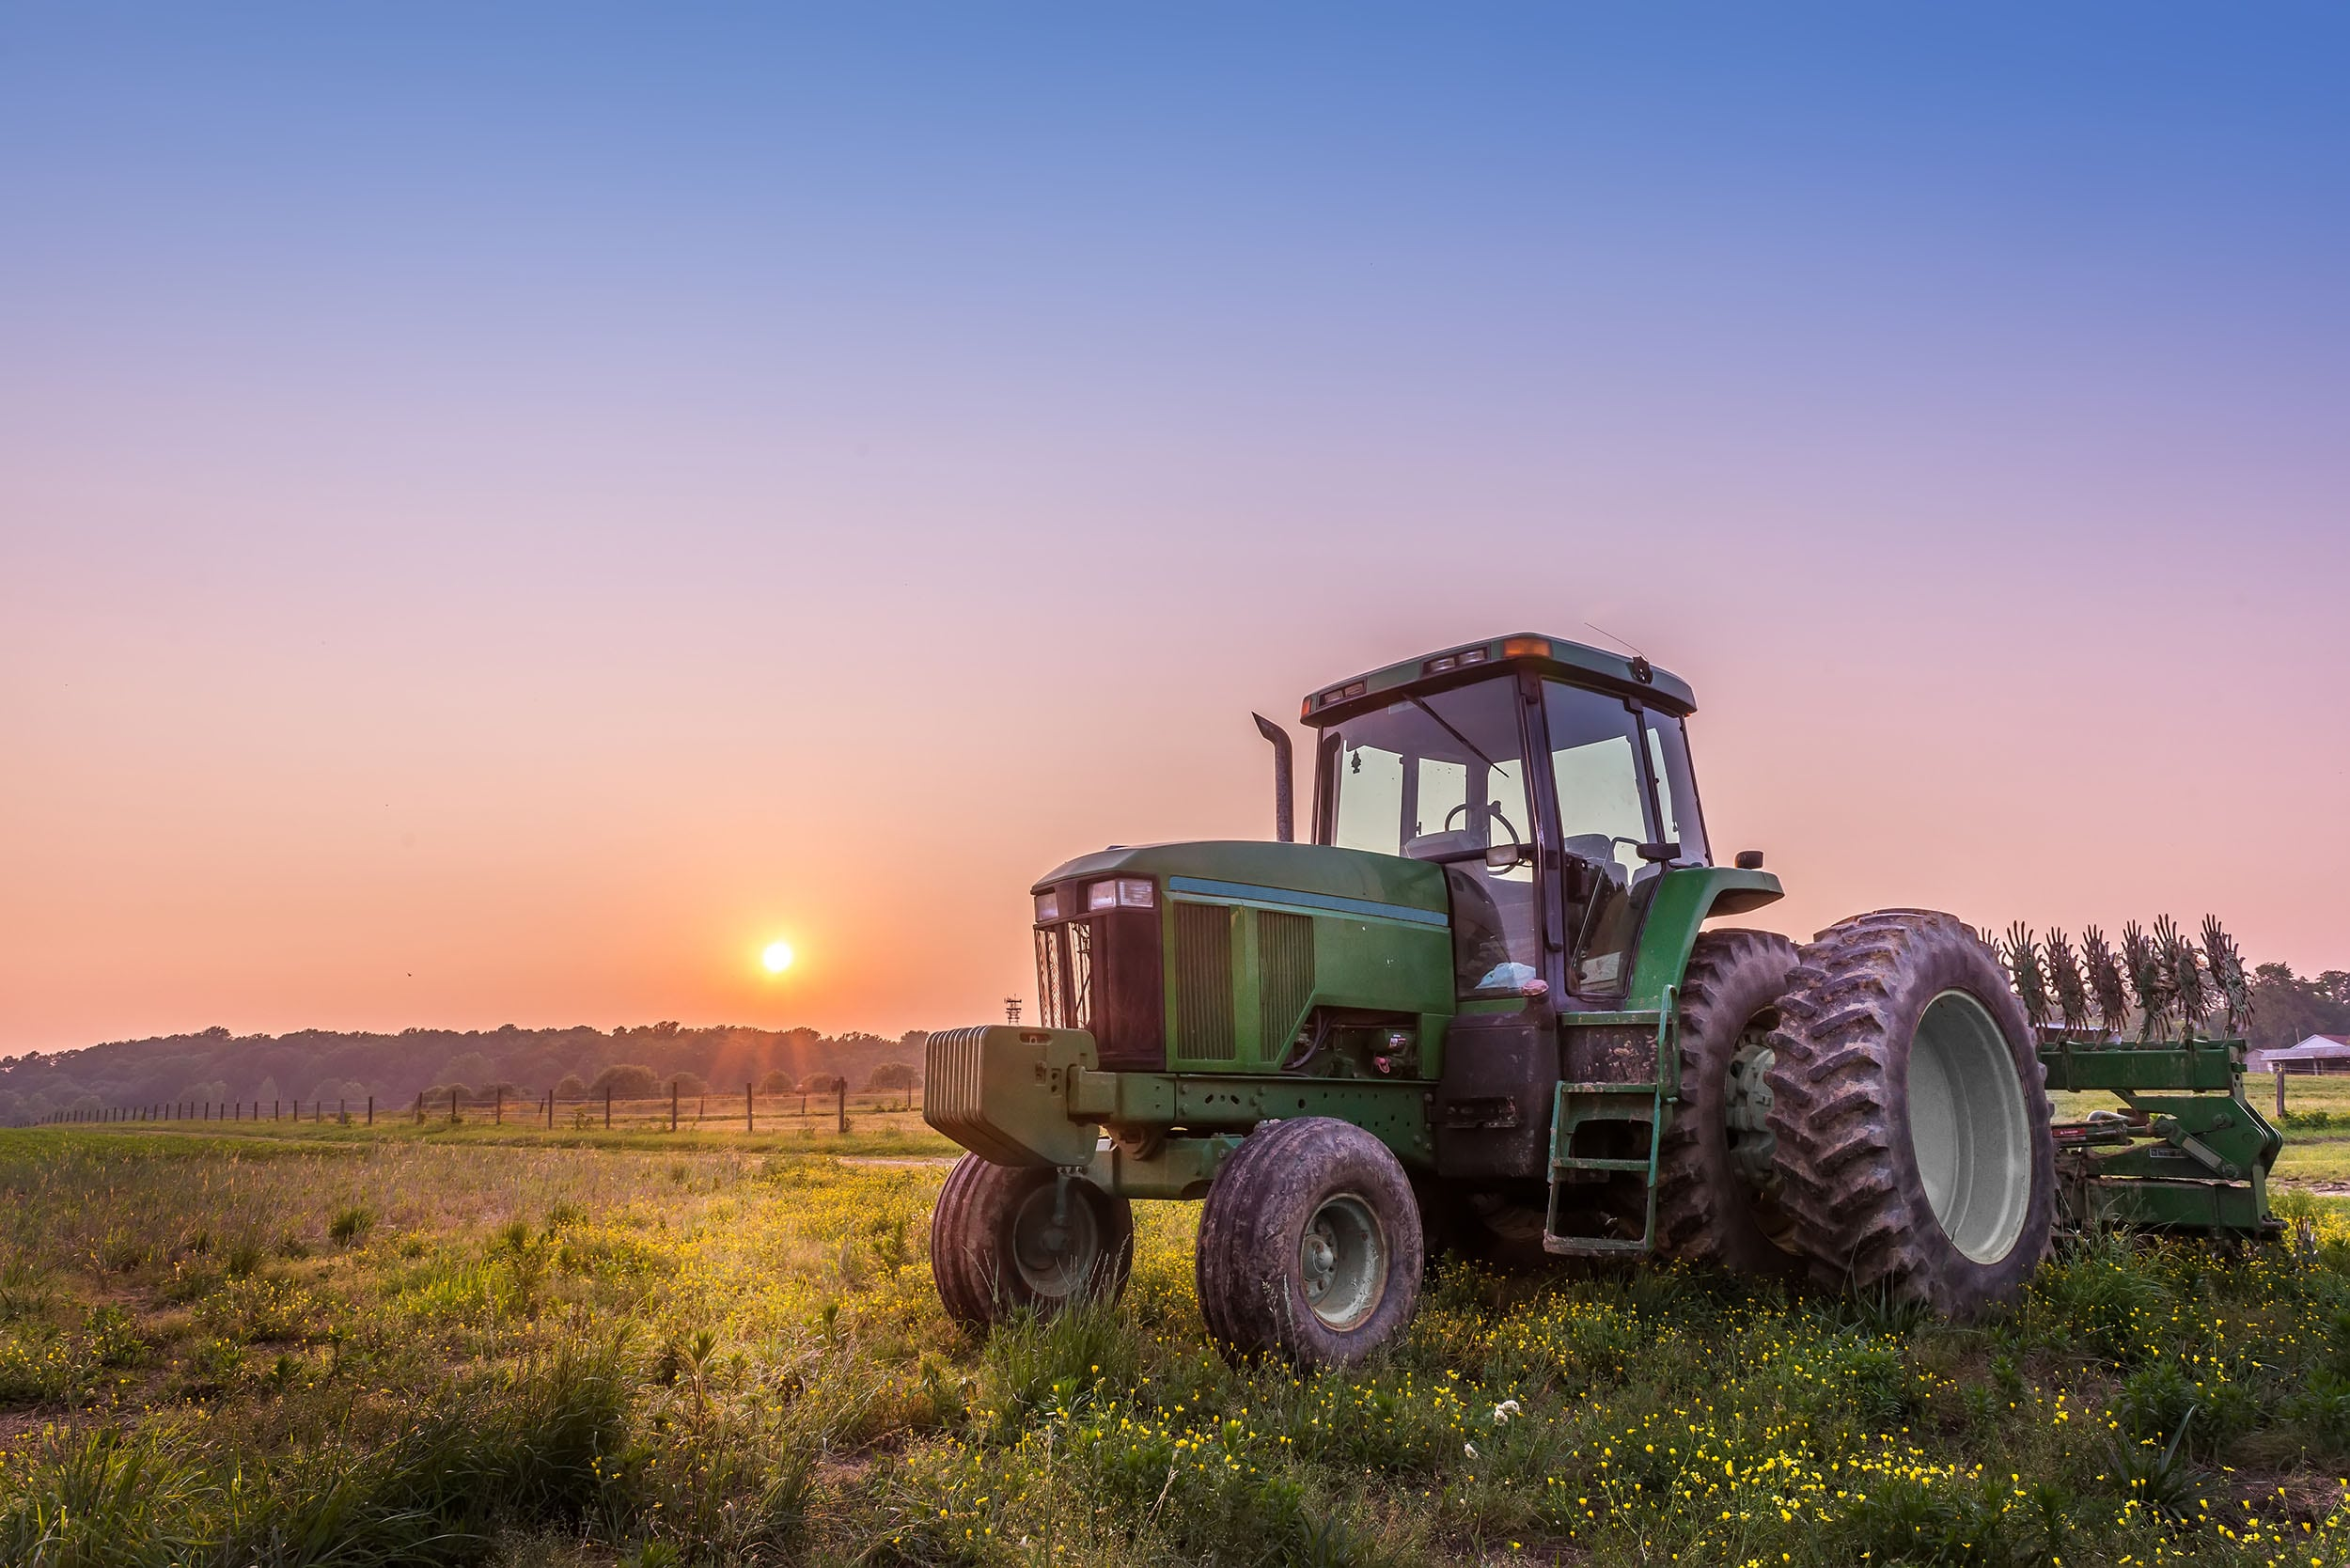 Montgomery County's 93,000-acre Agricultural Reserve